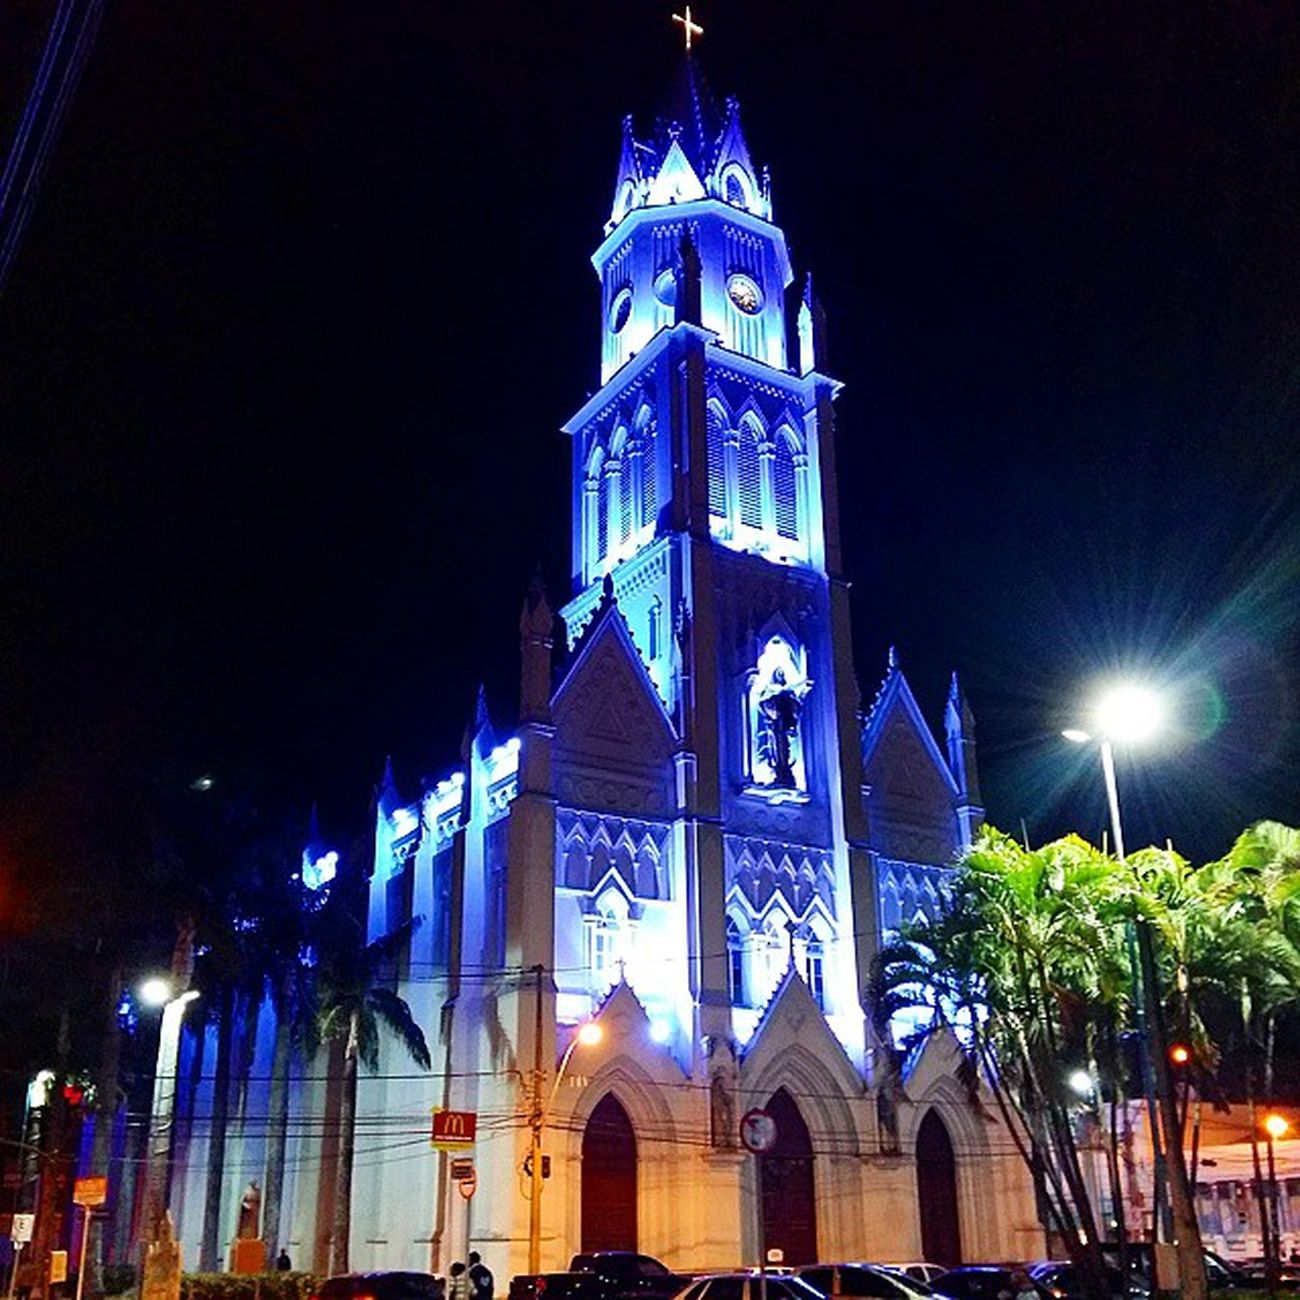 Church Temple Religion Francasp Francolandia Catedralnossasenhoradaconceicao Francacapitaldocalcado Night Light Blue Beautiful Samsungmobilecamera Galaxya5📱 SamsungGalaxyA5 Magnifier Samsungpicture Iglesia Церковь Kirche Chiesa Igrejaspelomundo